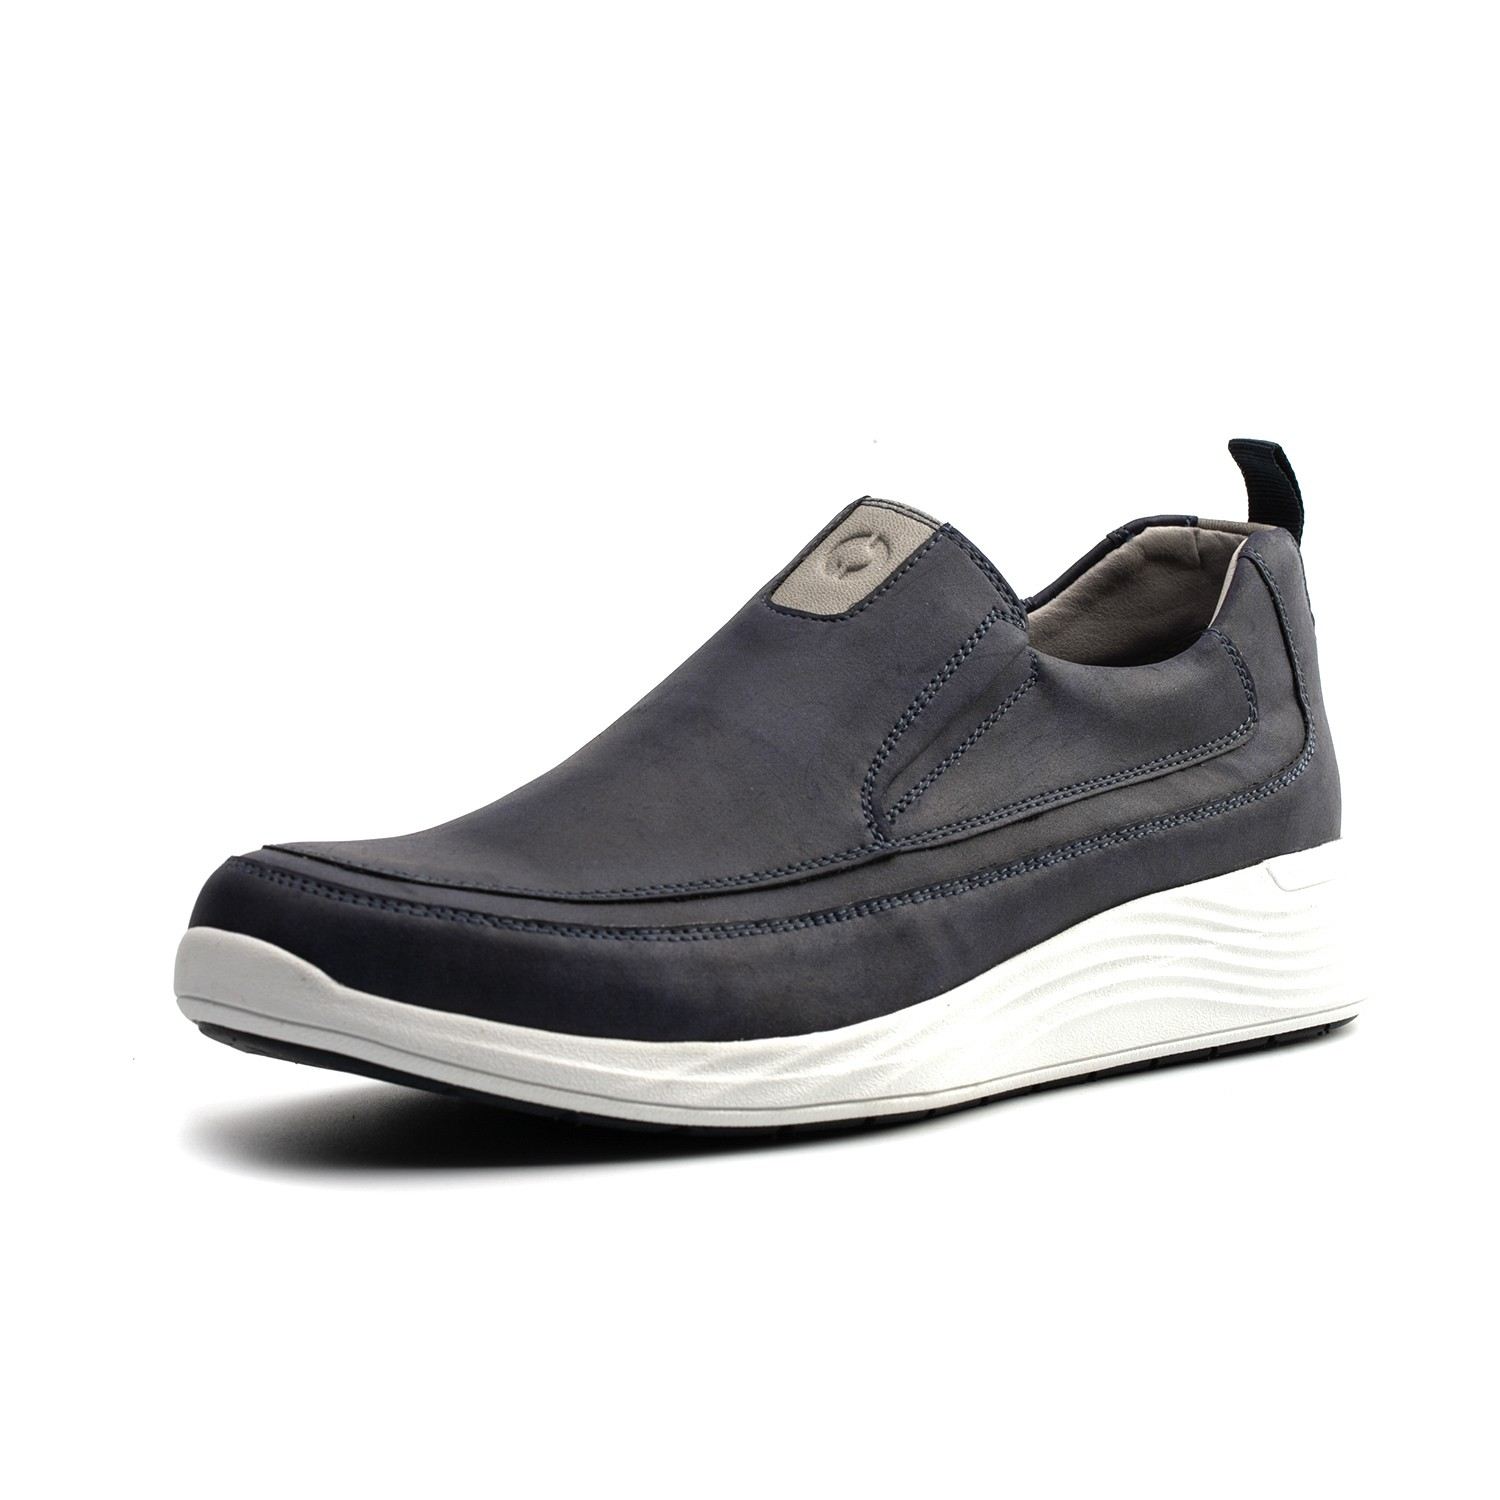 Omine M19009 Men Flat Casual Leather Shoes - Midnight Blue US 9.5